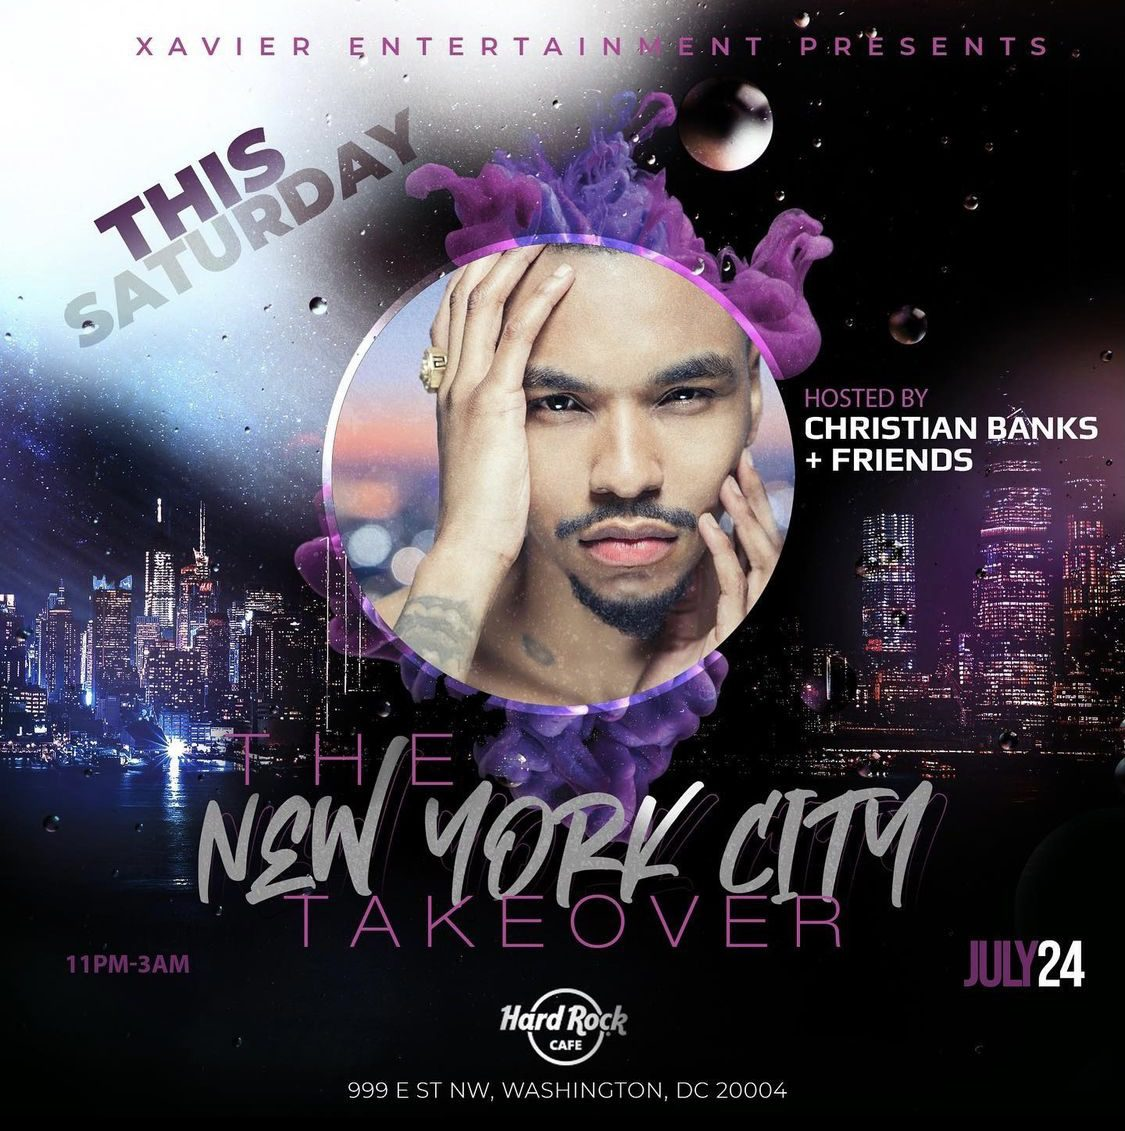 The New York City Takeover